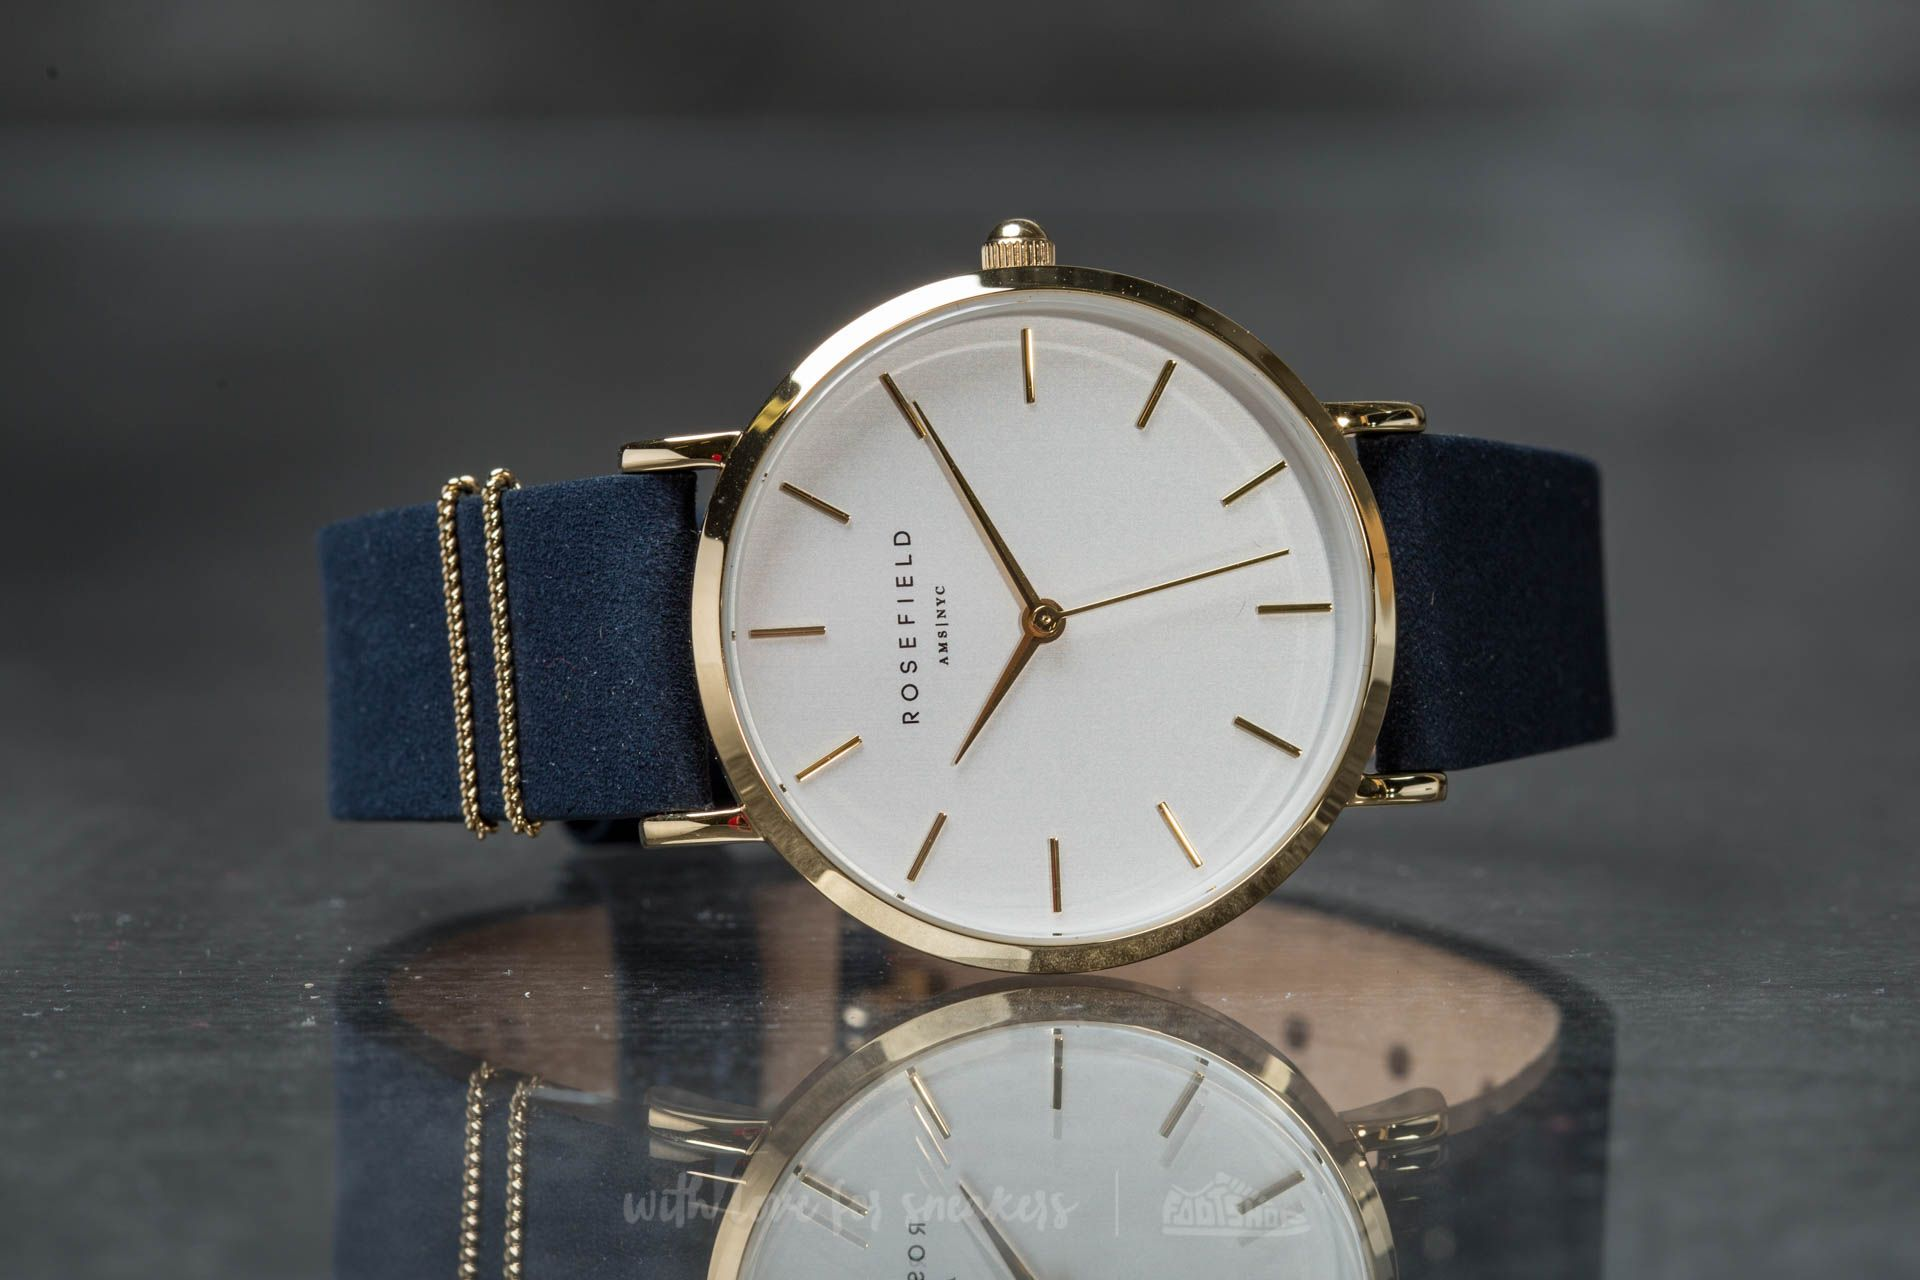 Rosefield The West Village Gold White/ Blue - 15186